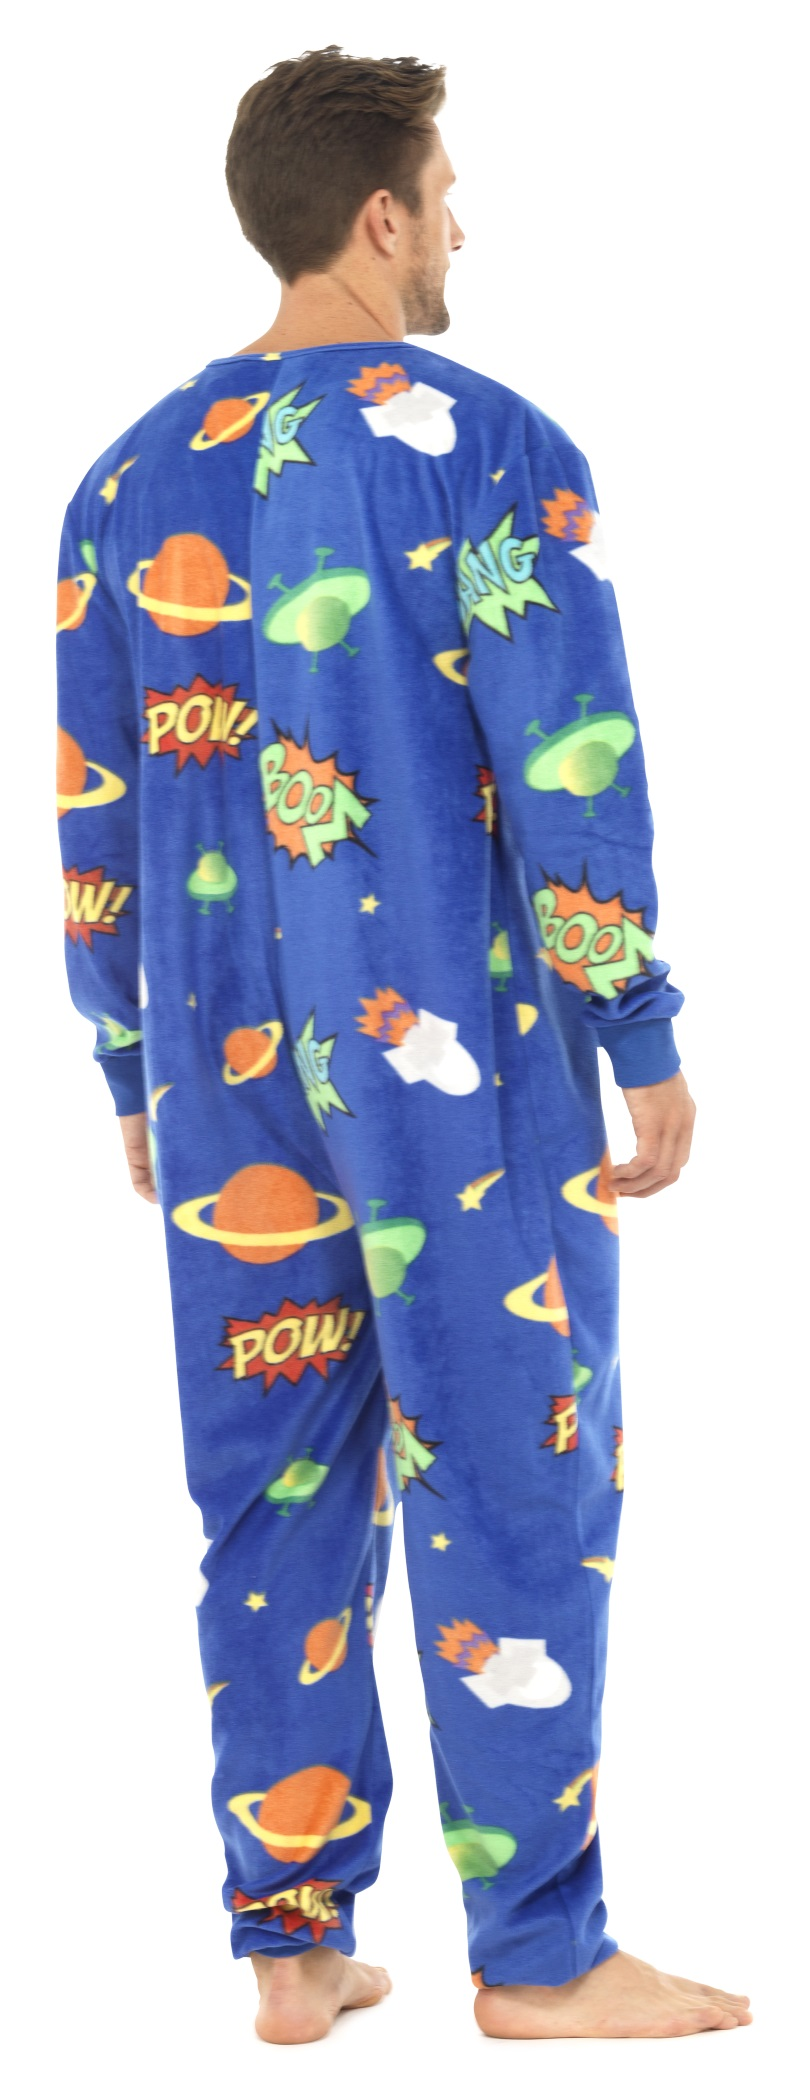 Shop for and buy womens fleece pajamas online at Macy's. Find womens fleece pajamas at Macy's. Macy's Presents: The Edit- A curated mix of fashion and inspiration Check It Out. Matching Family Pajamas Men's Fleece Navidad Pajama Set, Created for Macy's.